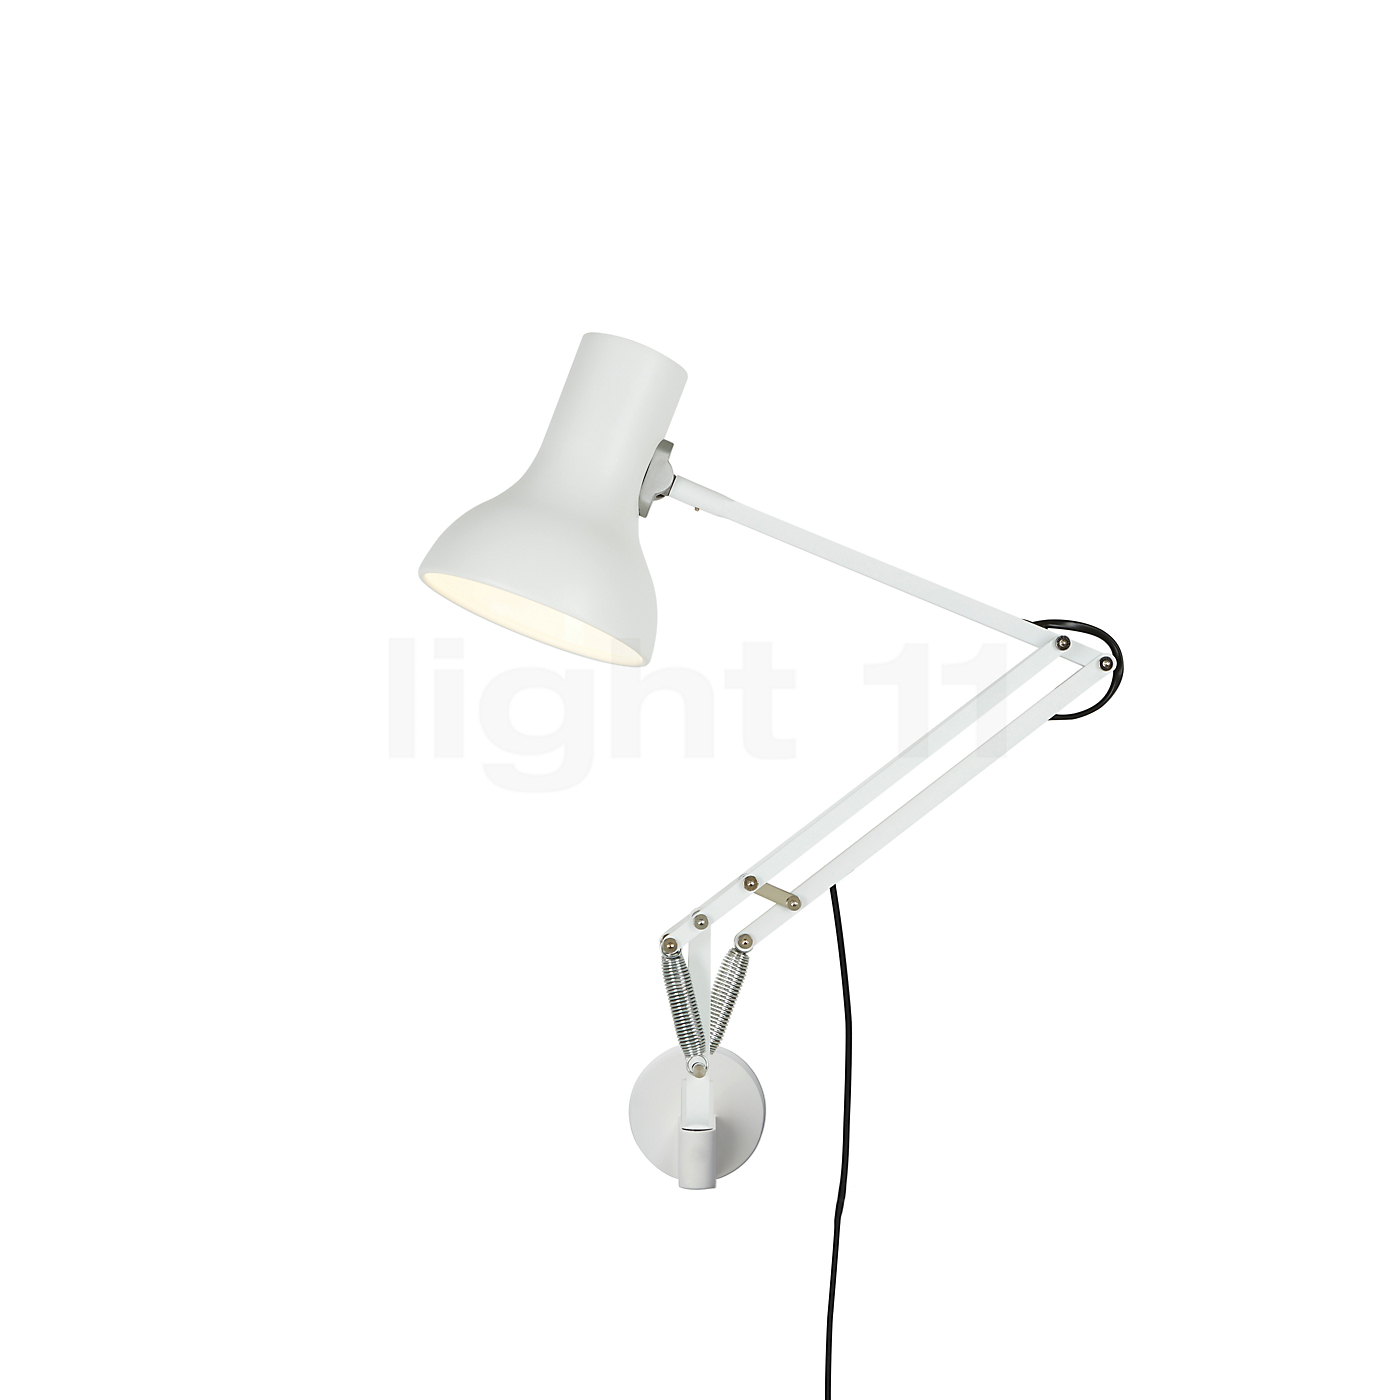 anglepoise type 75 mini lampe de bureau avec fixation murale. Black Bedroom Furniture Sets. Home Design Ideas